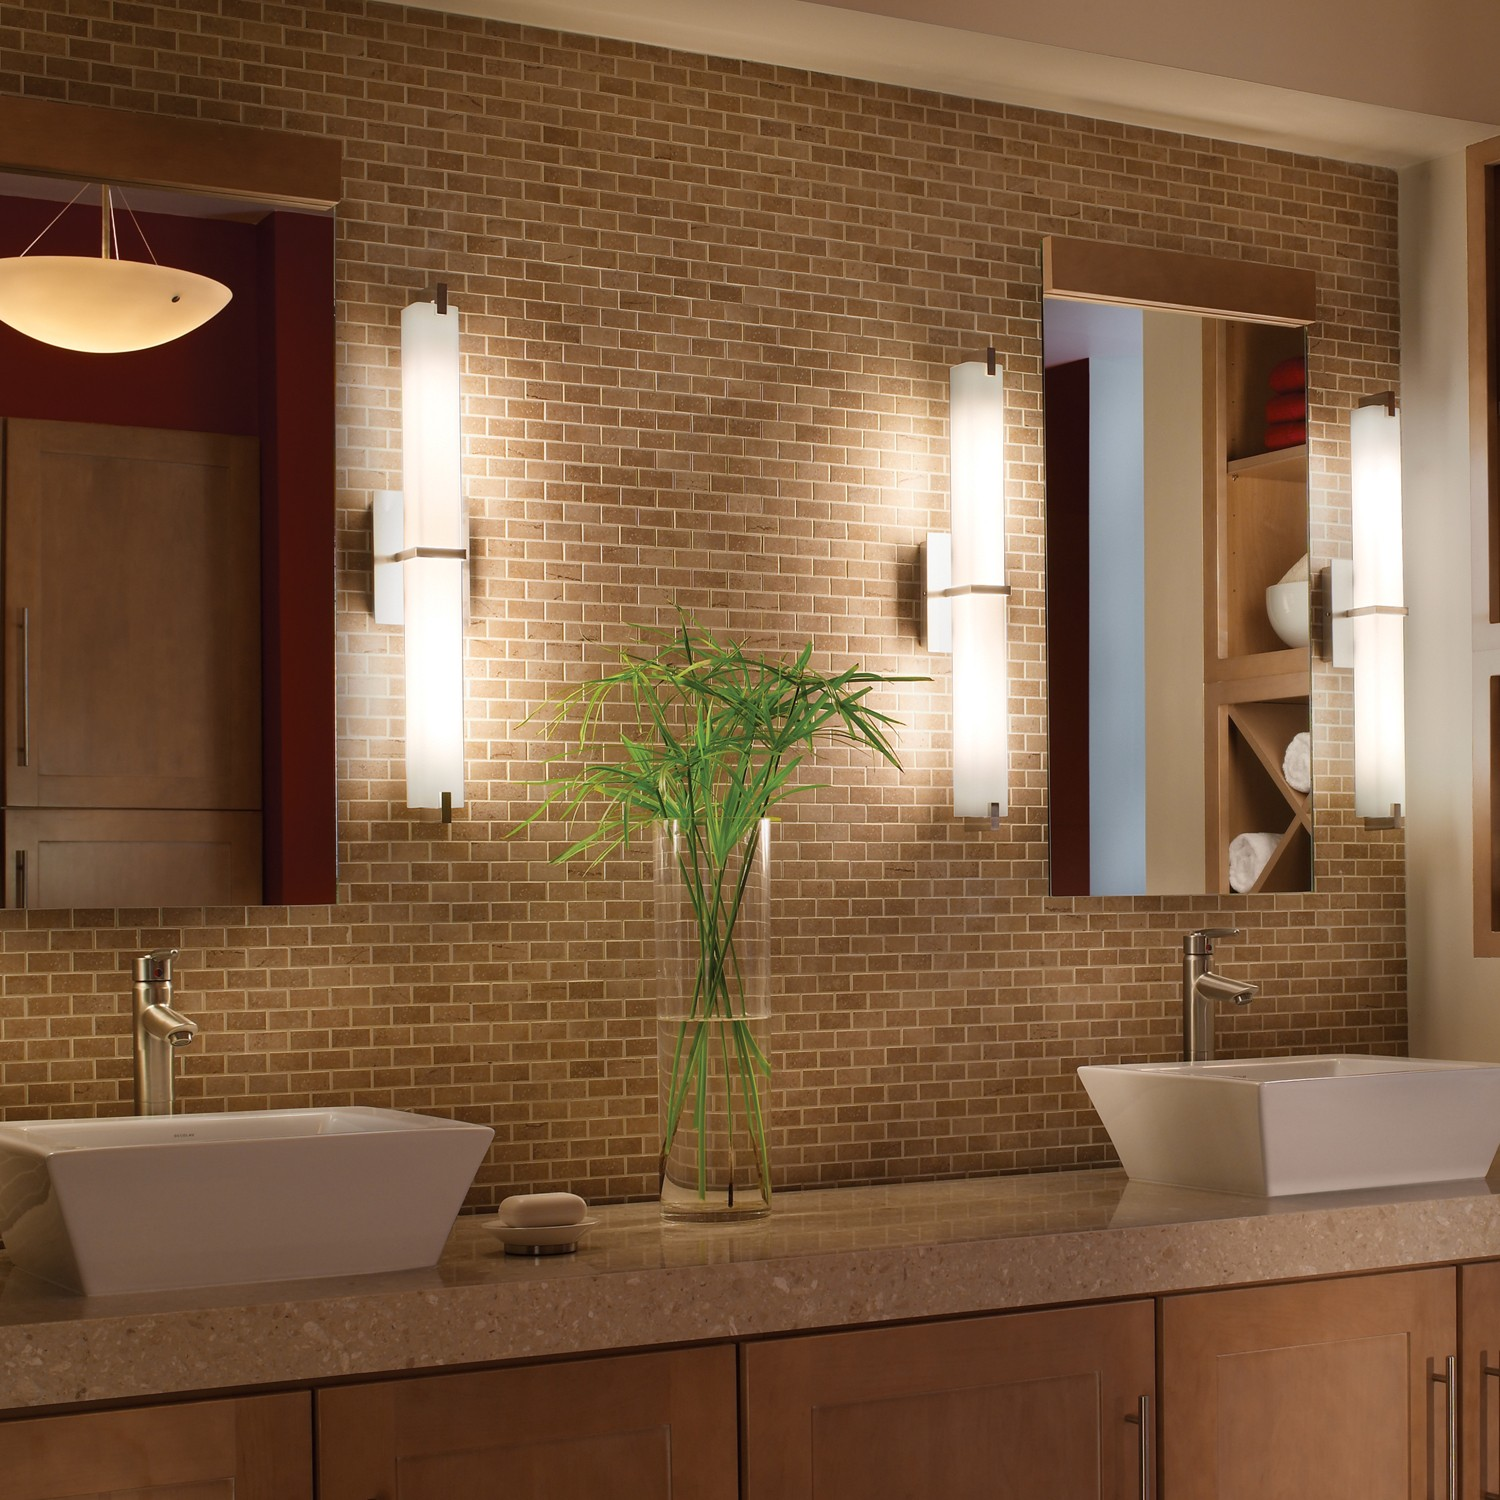 How to light a bathroom lighting ideas tips ylighting how to light a bathroom vanity mozeypictures